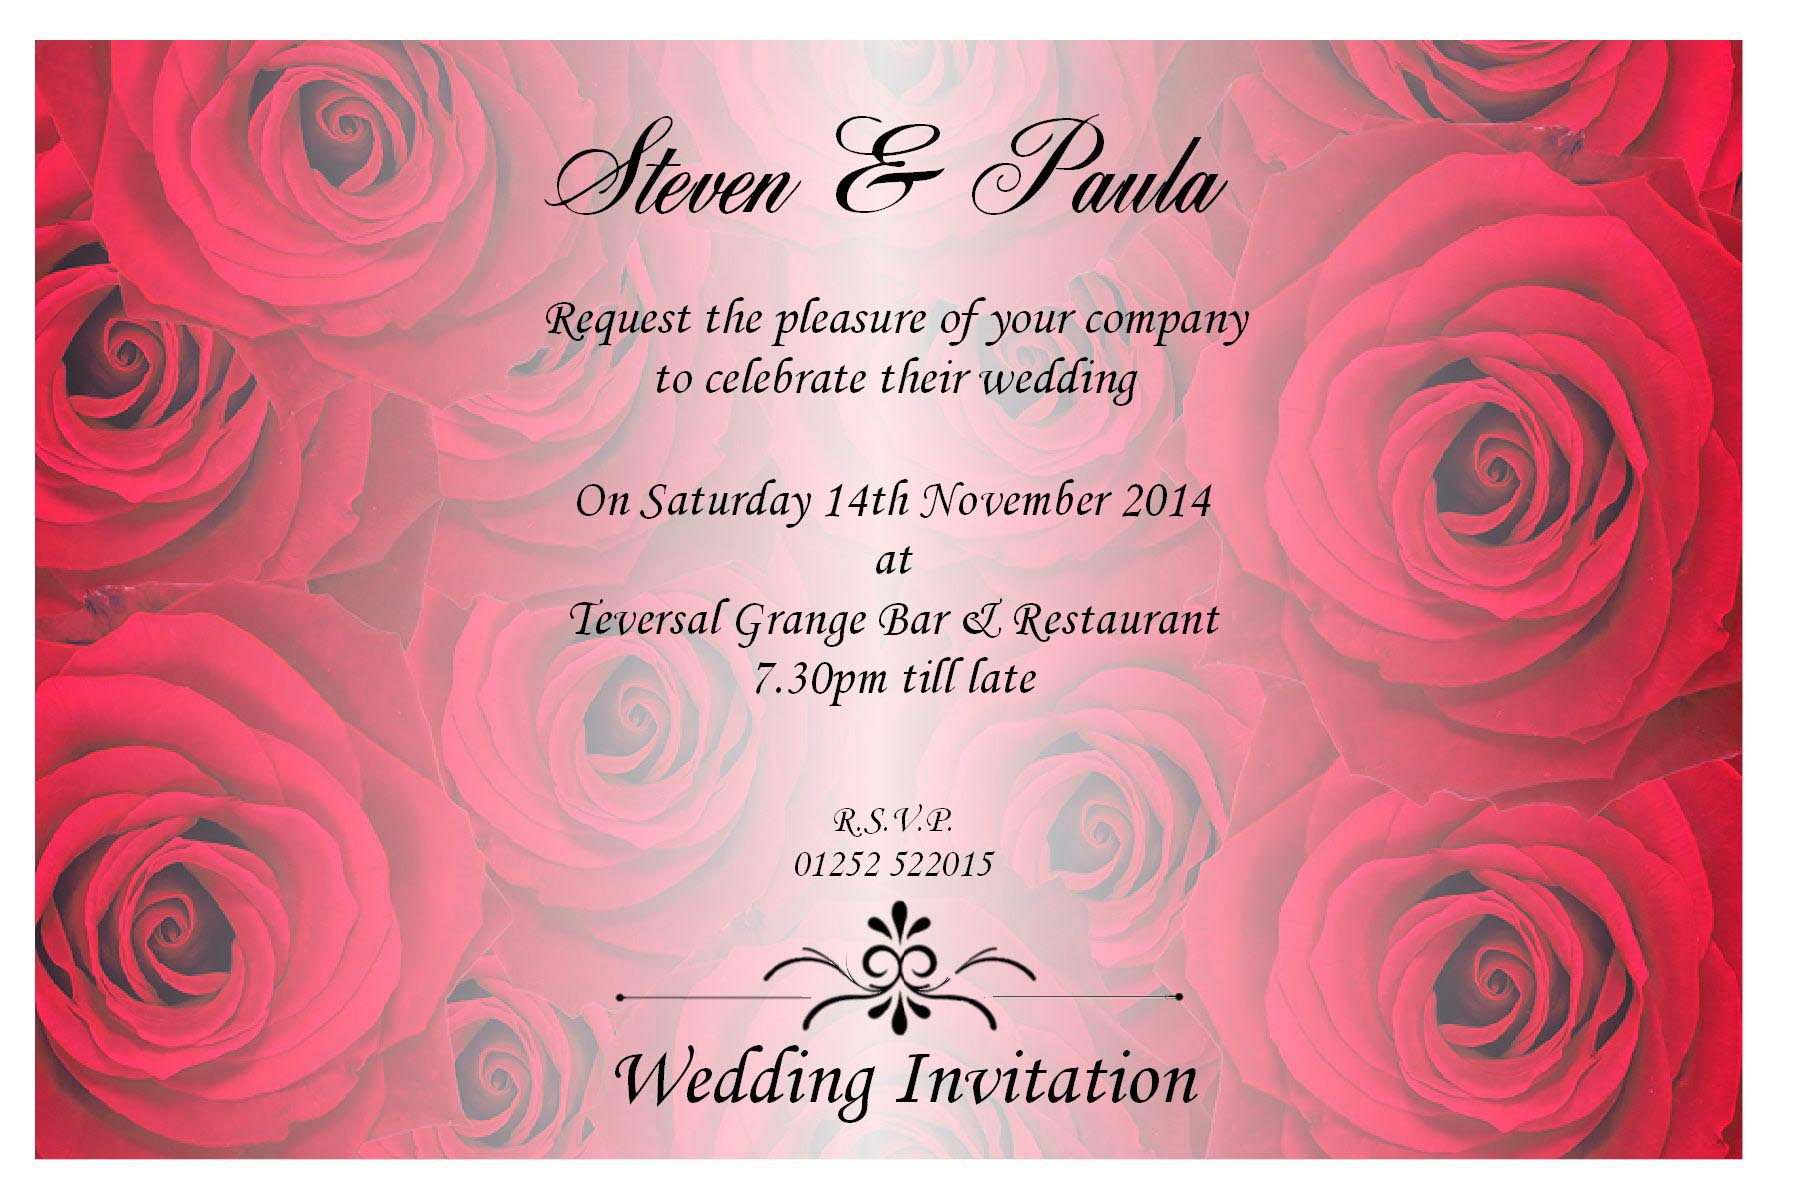 Love Marriage Wedding Invitation Wording: Romantic Marriage Invitation Quotes For Indian Wedding